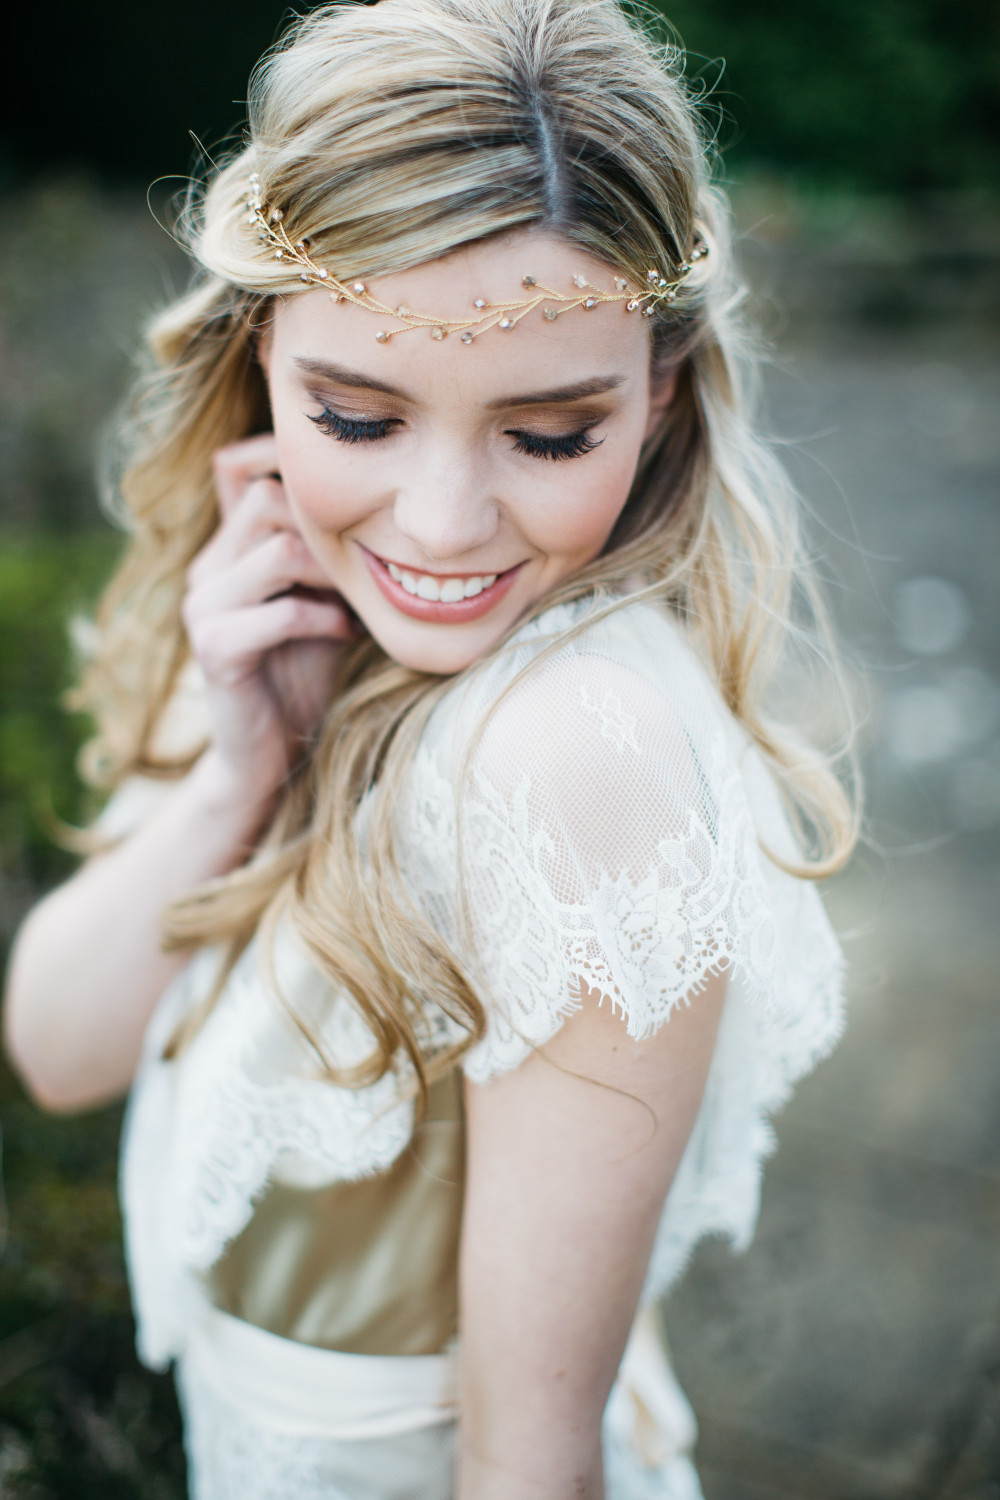 - Make Me Bridal Artist: Julia Jeckell Hair and Make-up Artist. Photography by: Aden Preist. #bohemian #boho #bridalhairstylist #bohobride #bridalmakeup